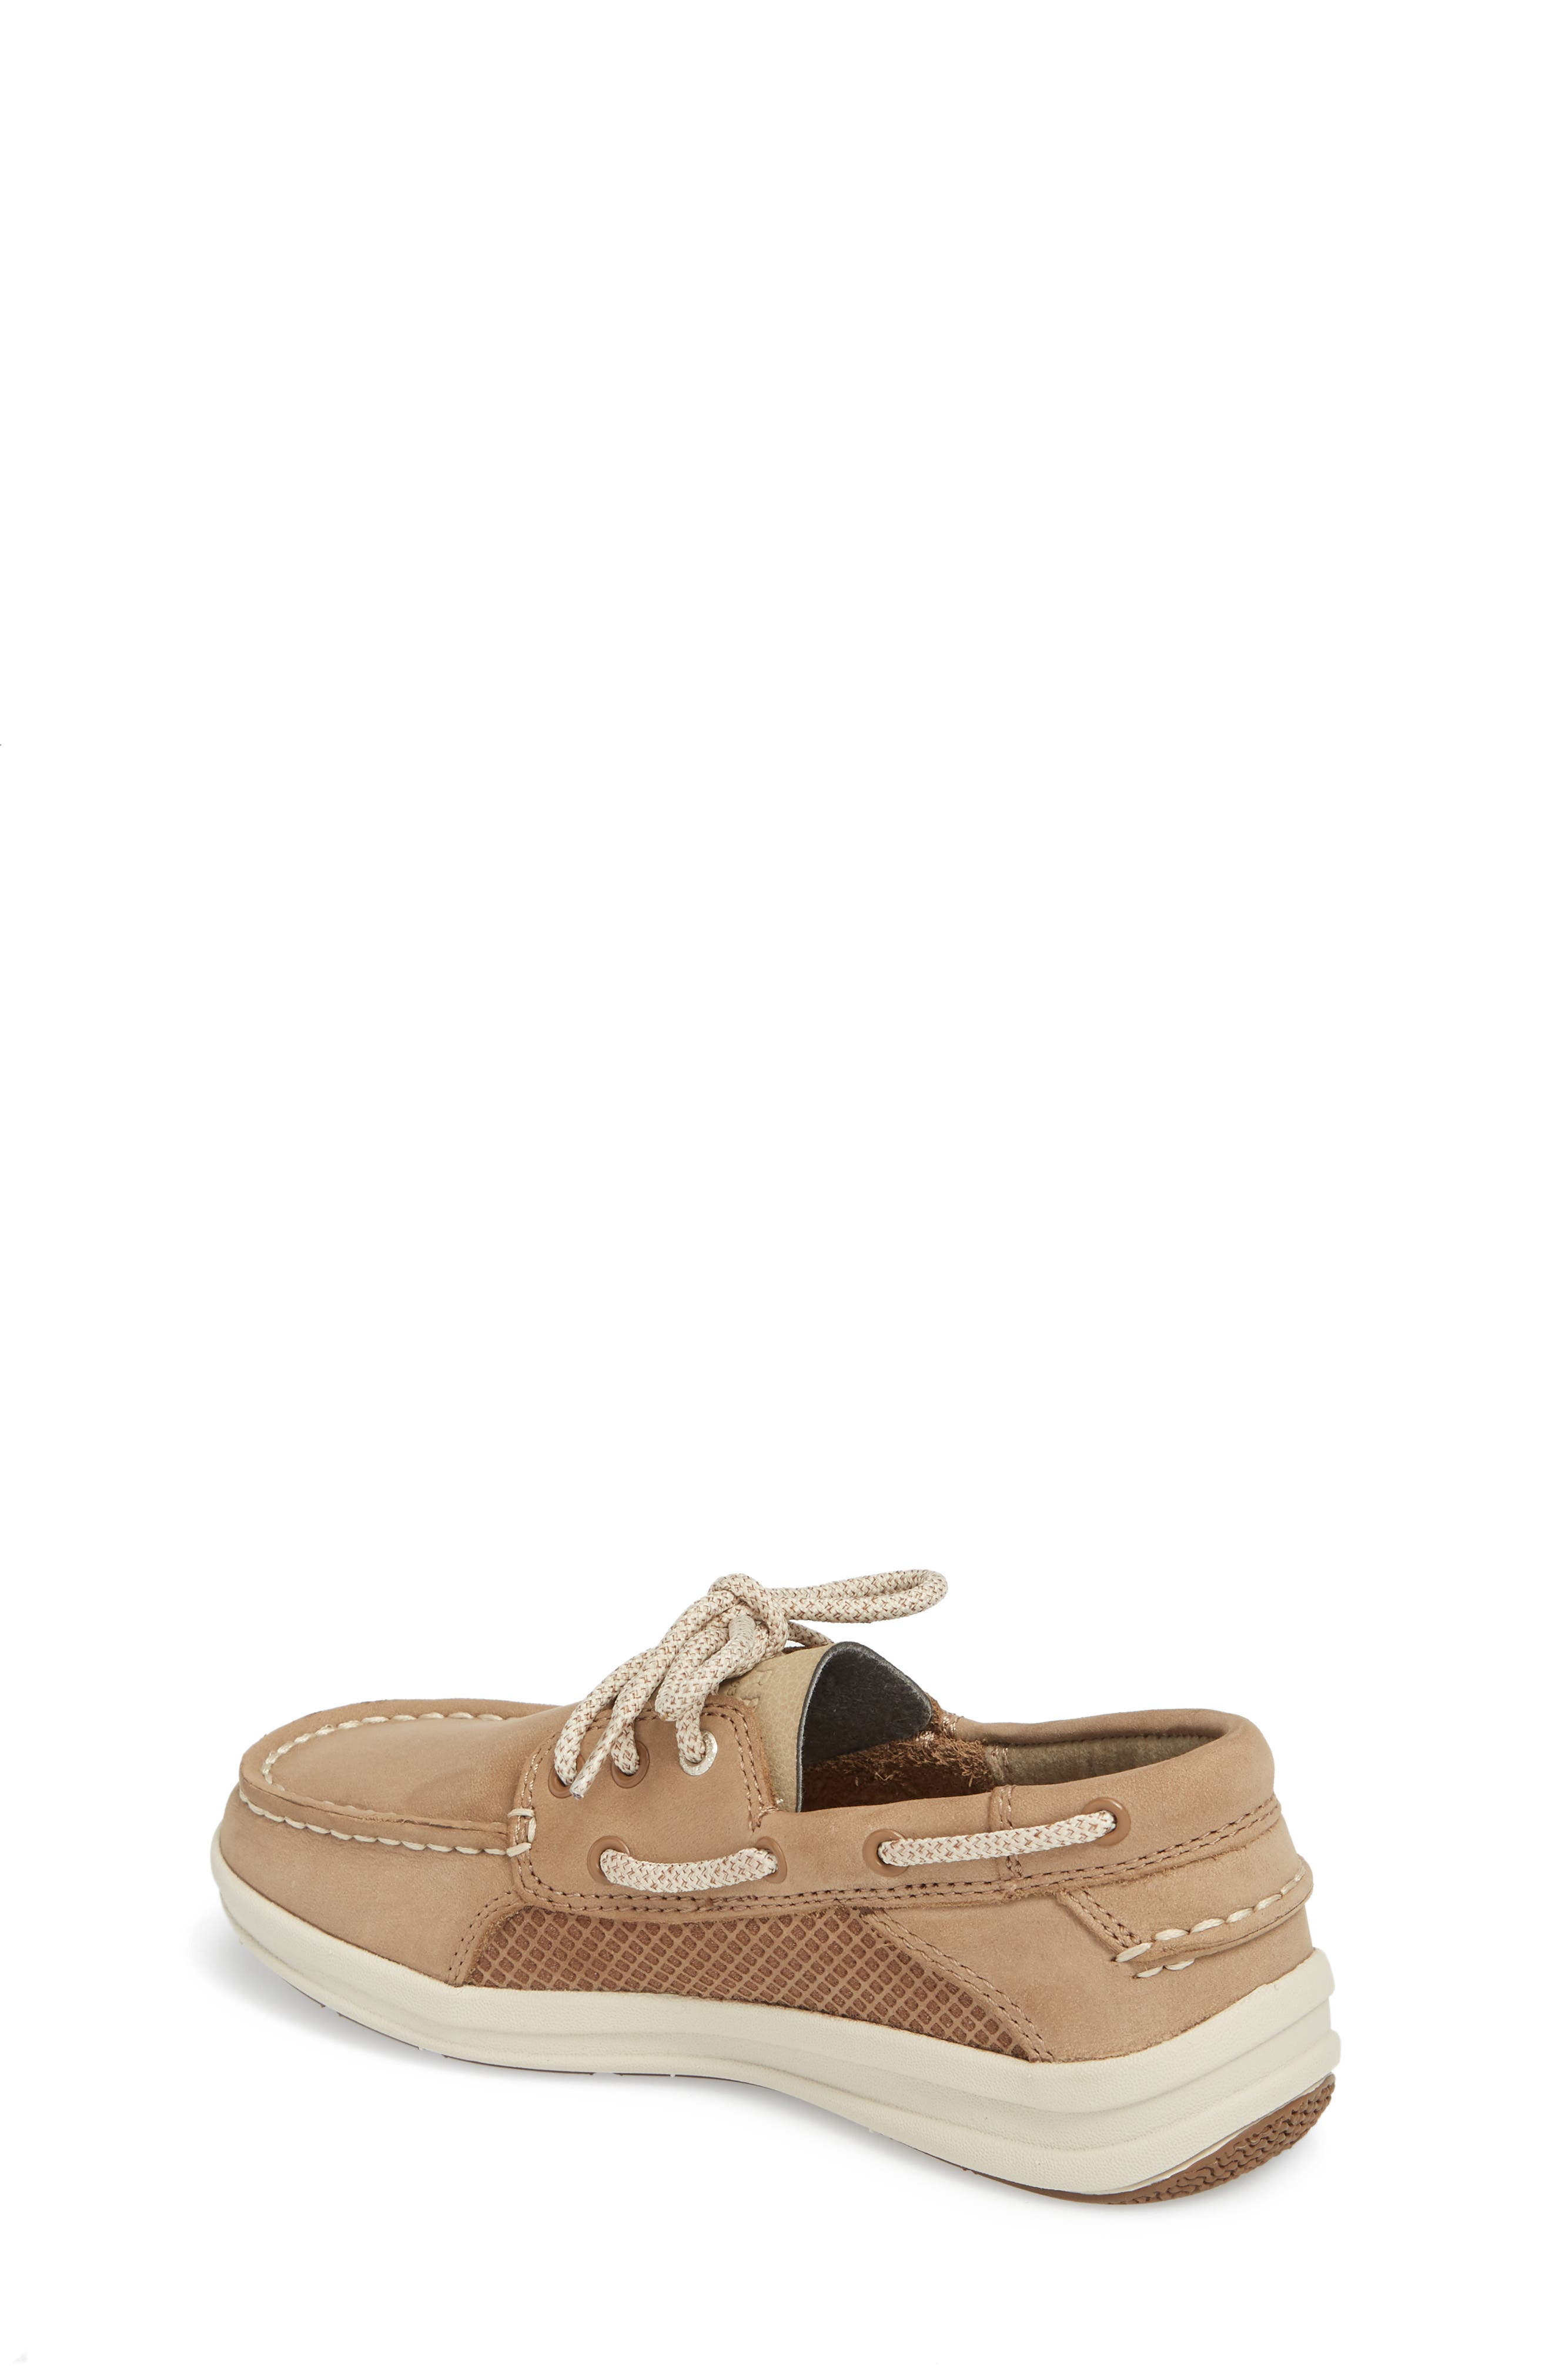 Sperry Gamefish Boat Shoe,                             Alternate thumbnail 2, color,                             270